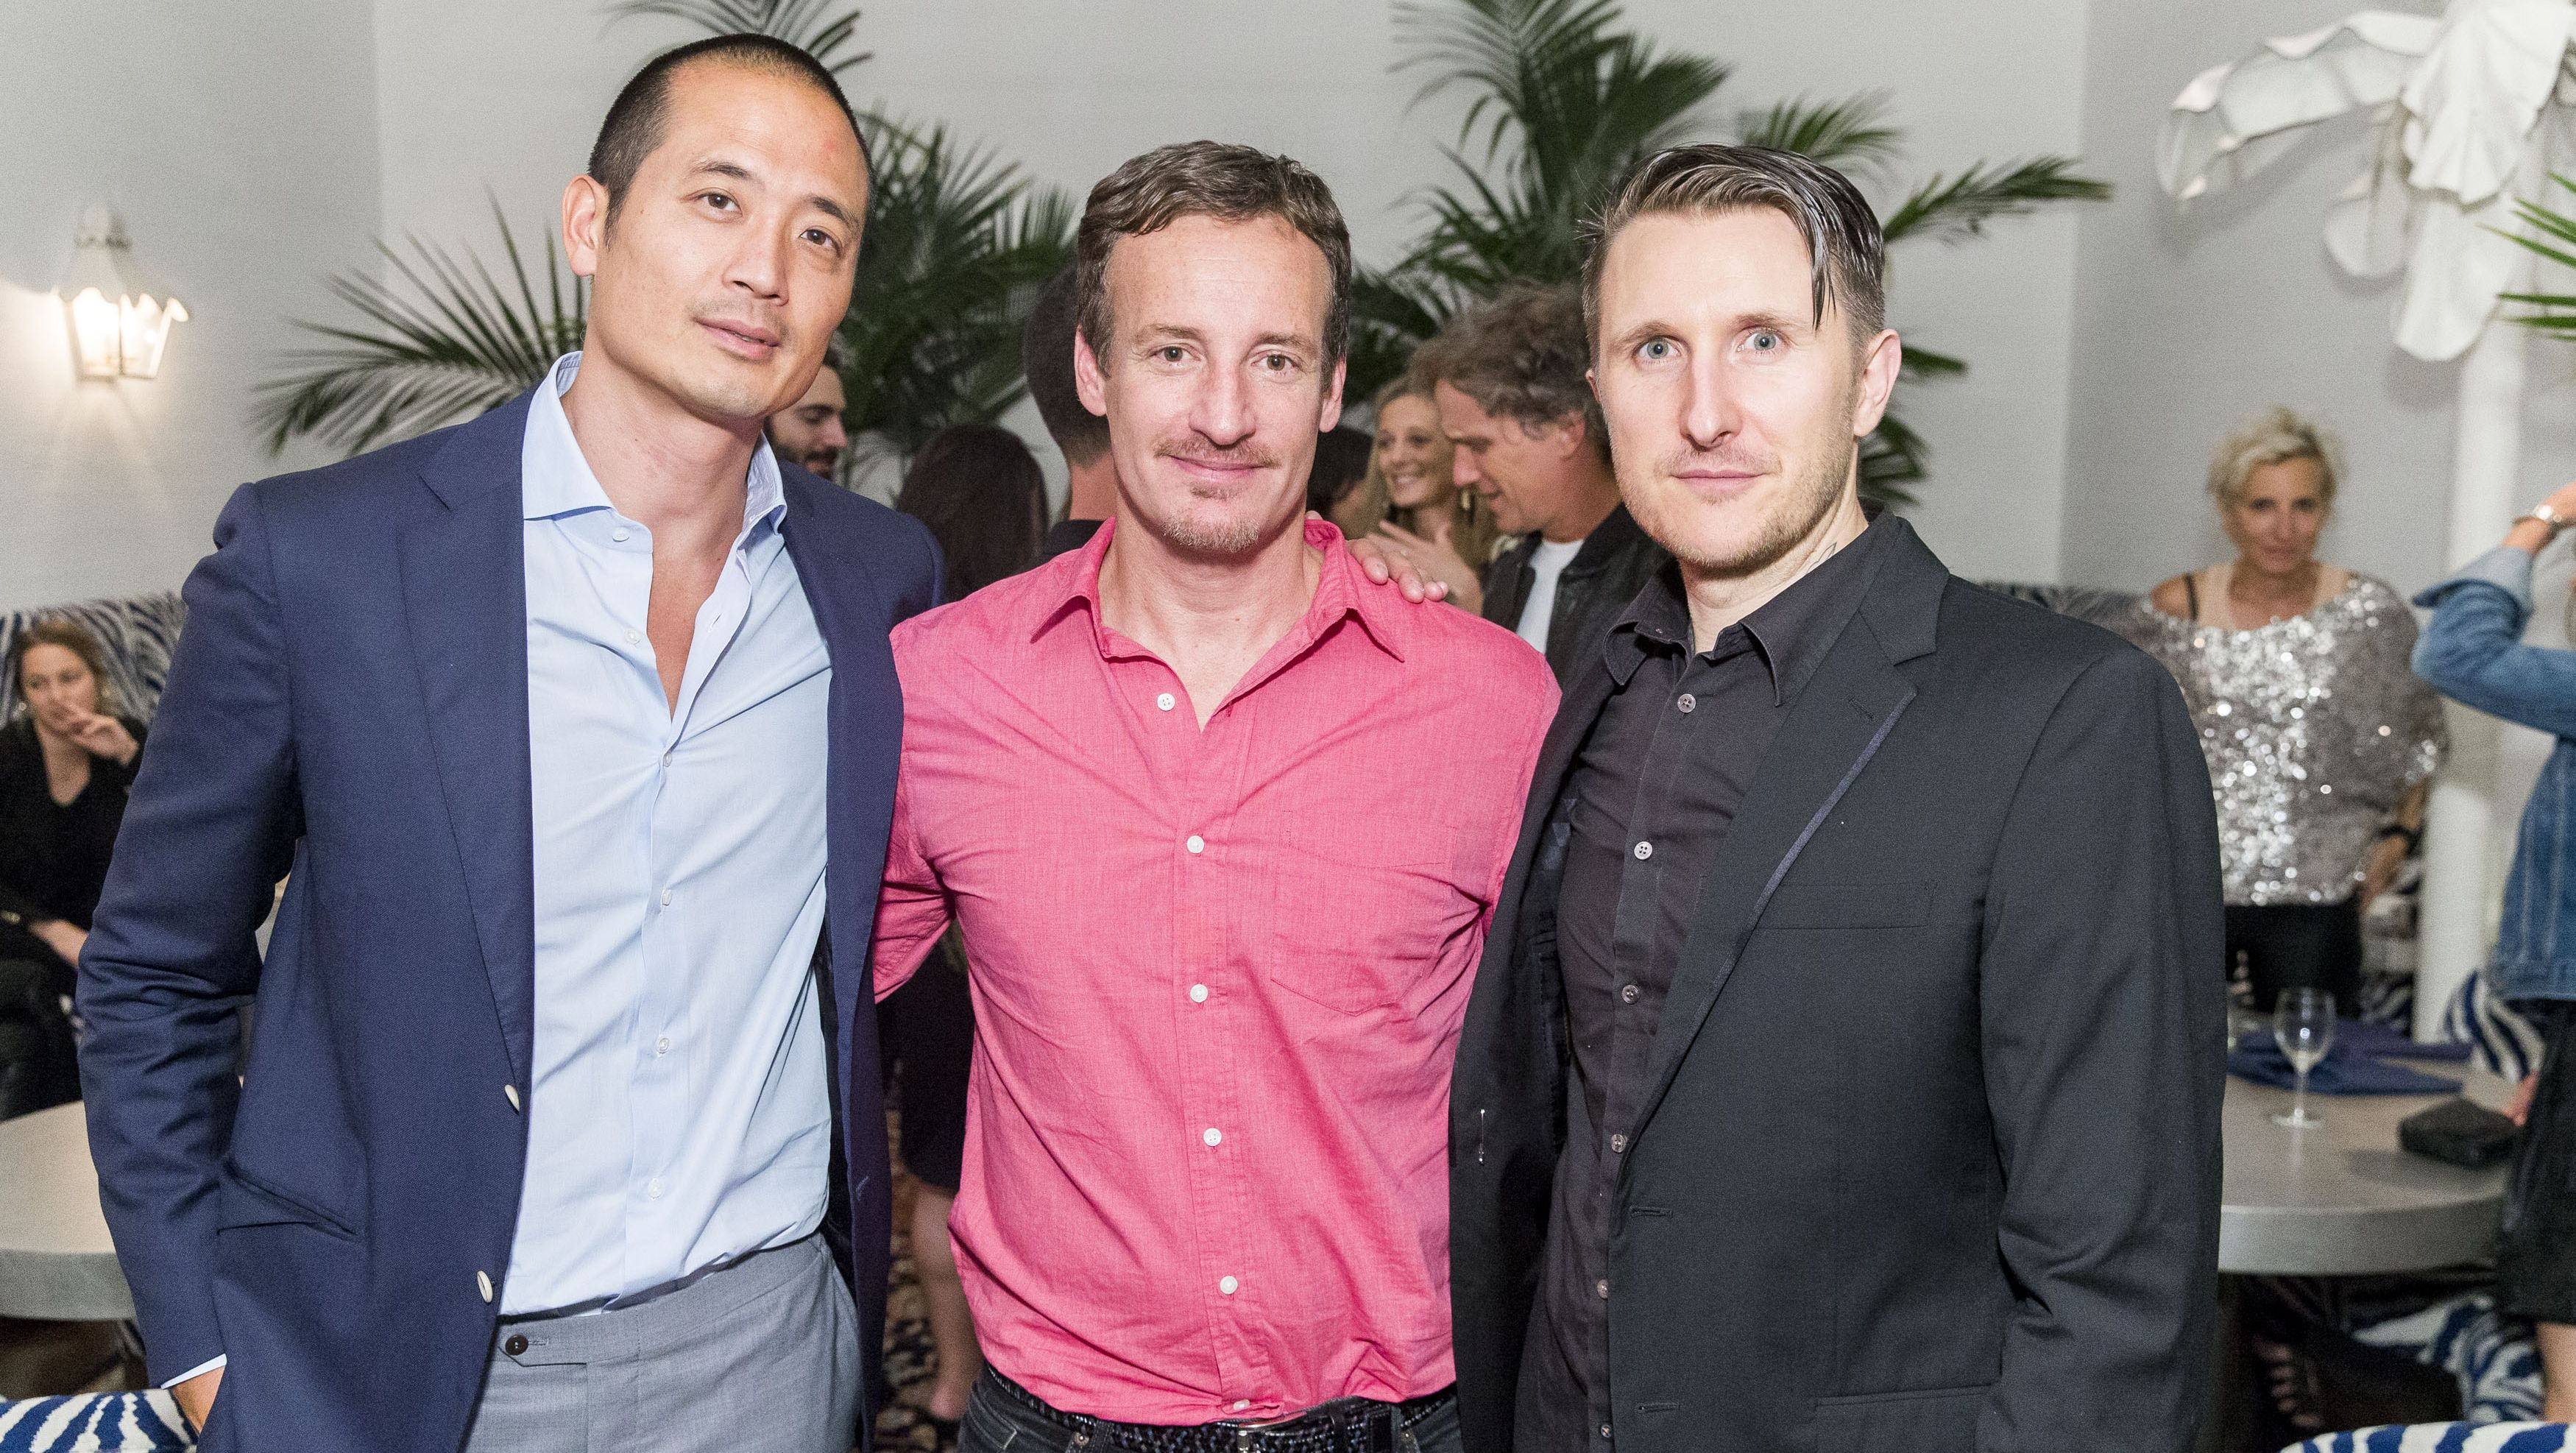 Todd Traina (center) joins Beboe co-founders Clement Kwan (left) and Scott Campbell (right) at a San Francisco launch party.